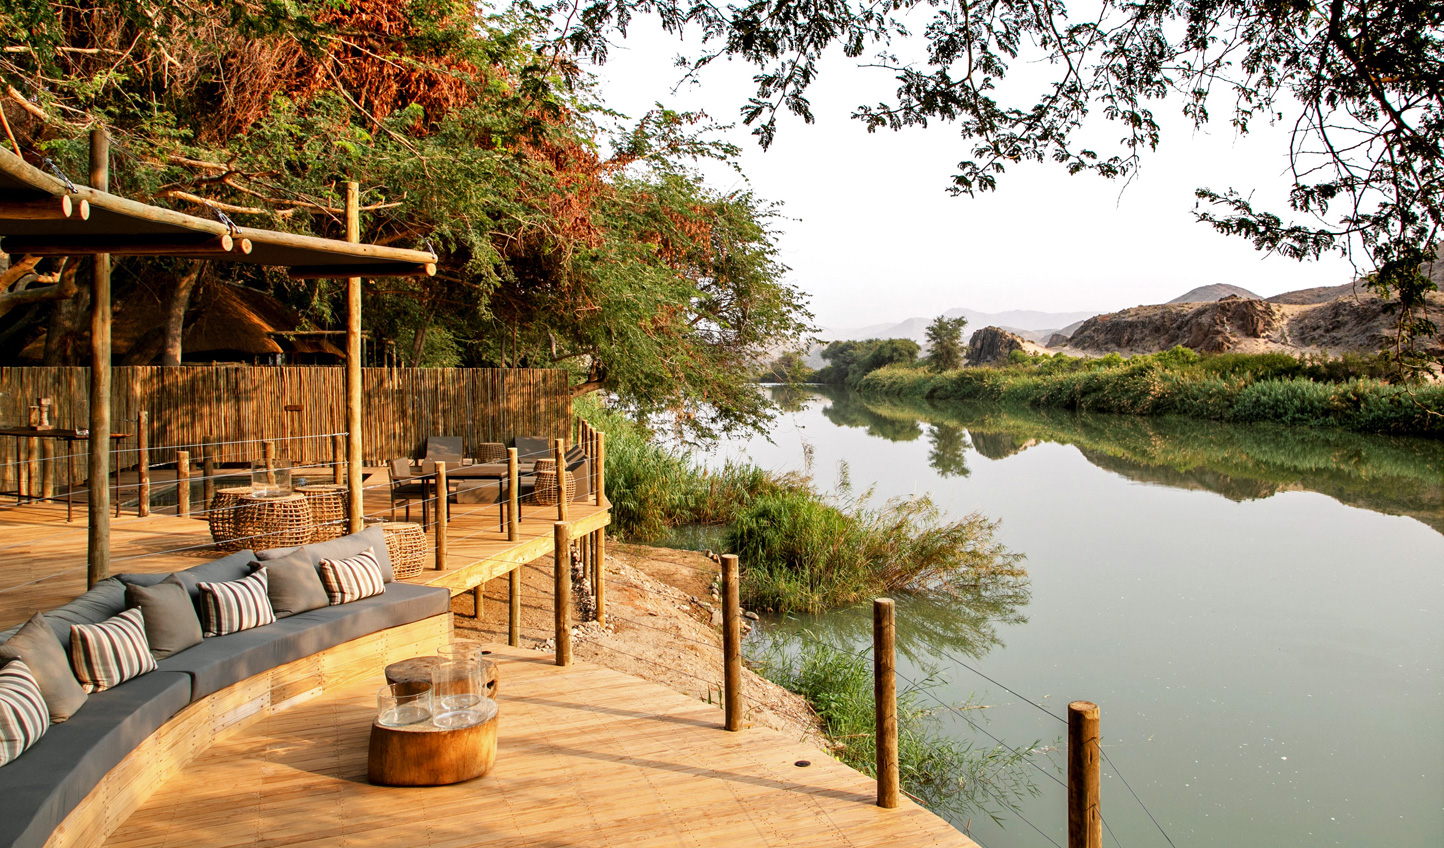 The perfect spot for your evening sundowner